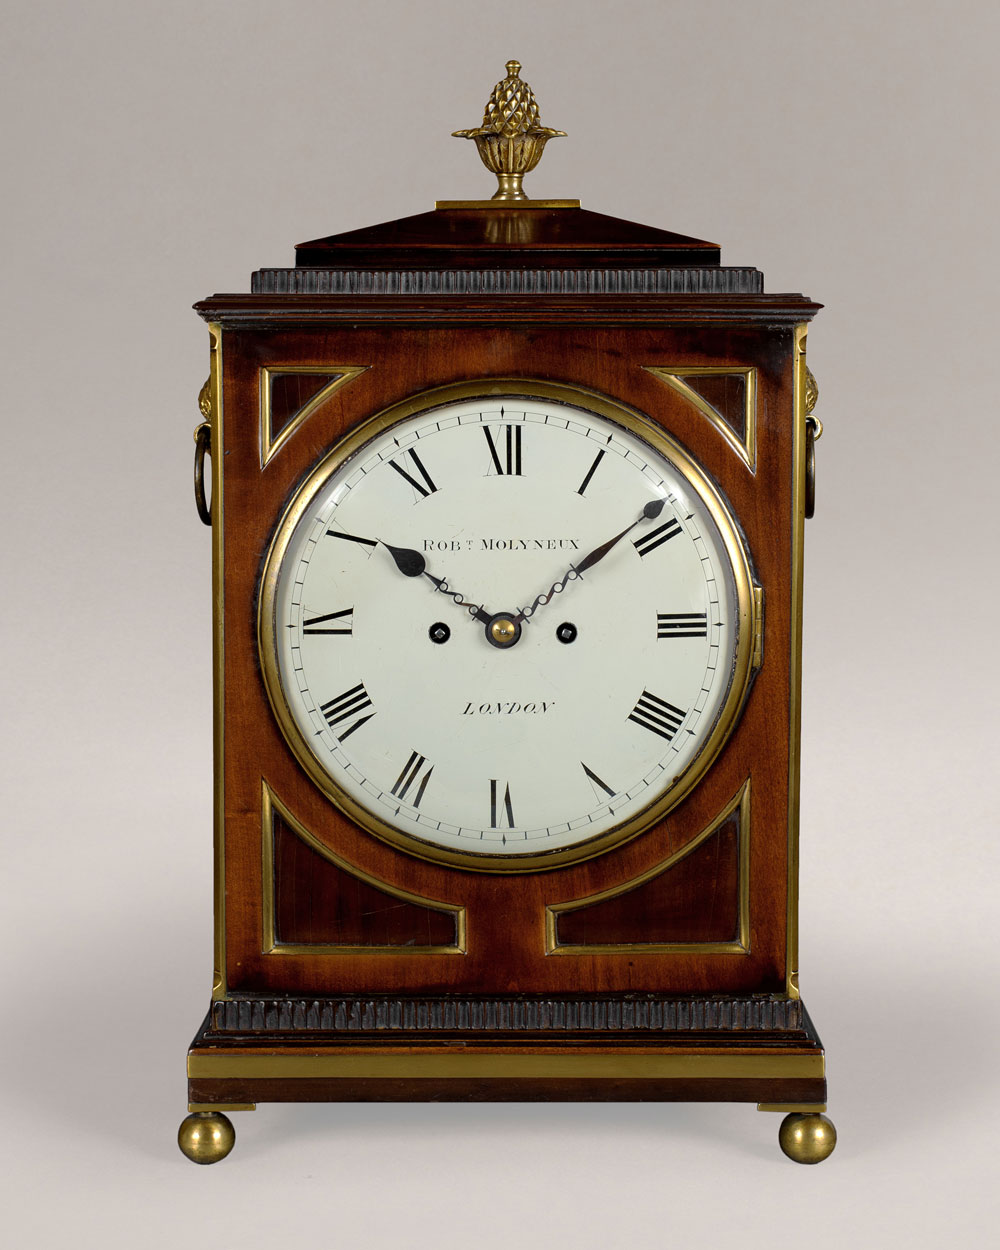 ROBERT MOLYNEUX. A good late Regency ebonised pearwood bracket clock